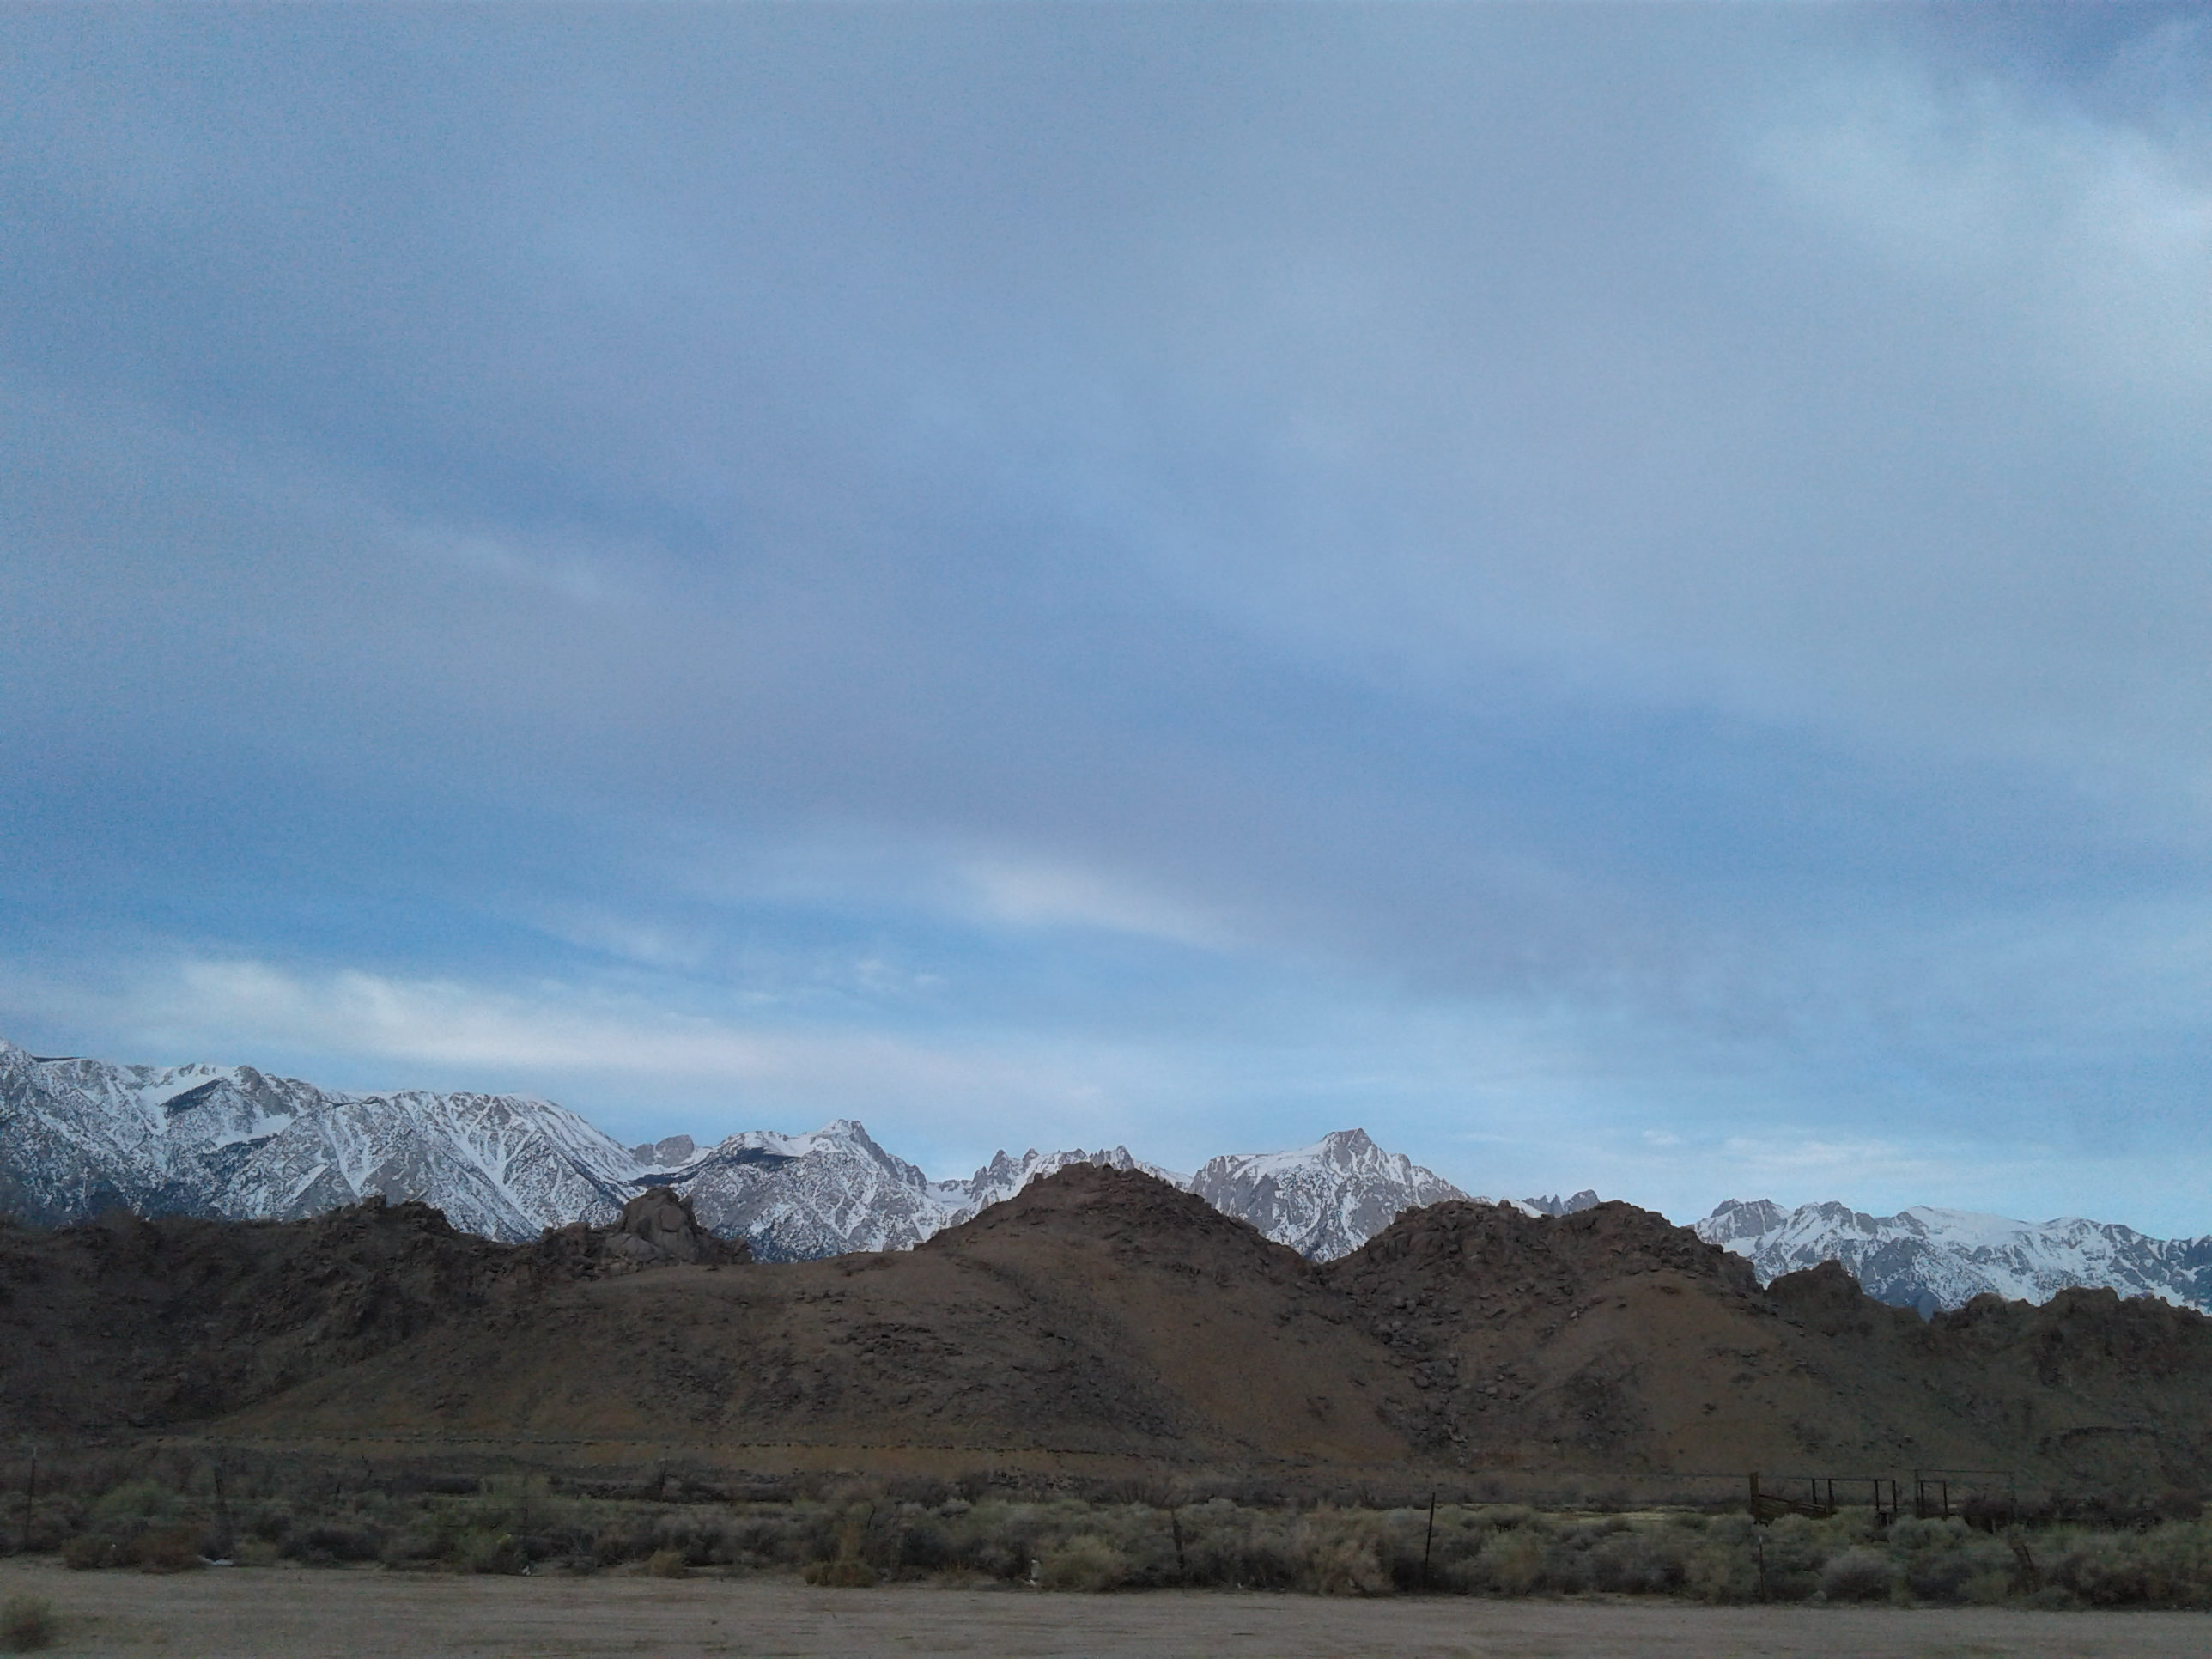 02 - Travel to Lone Pine CA - 2017-03-10